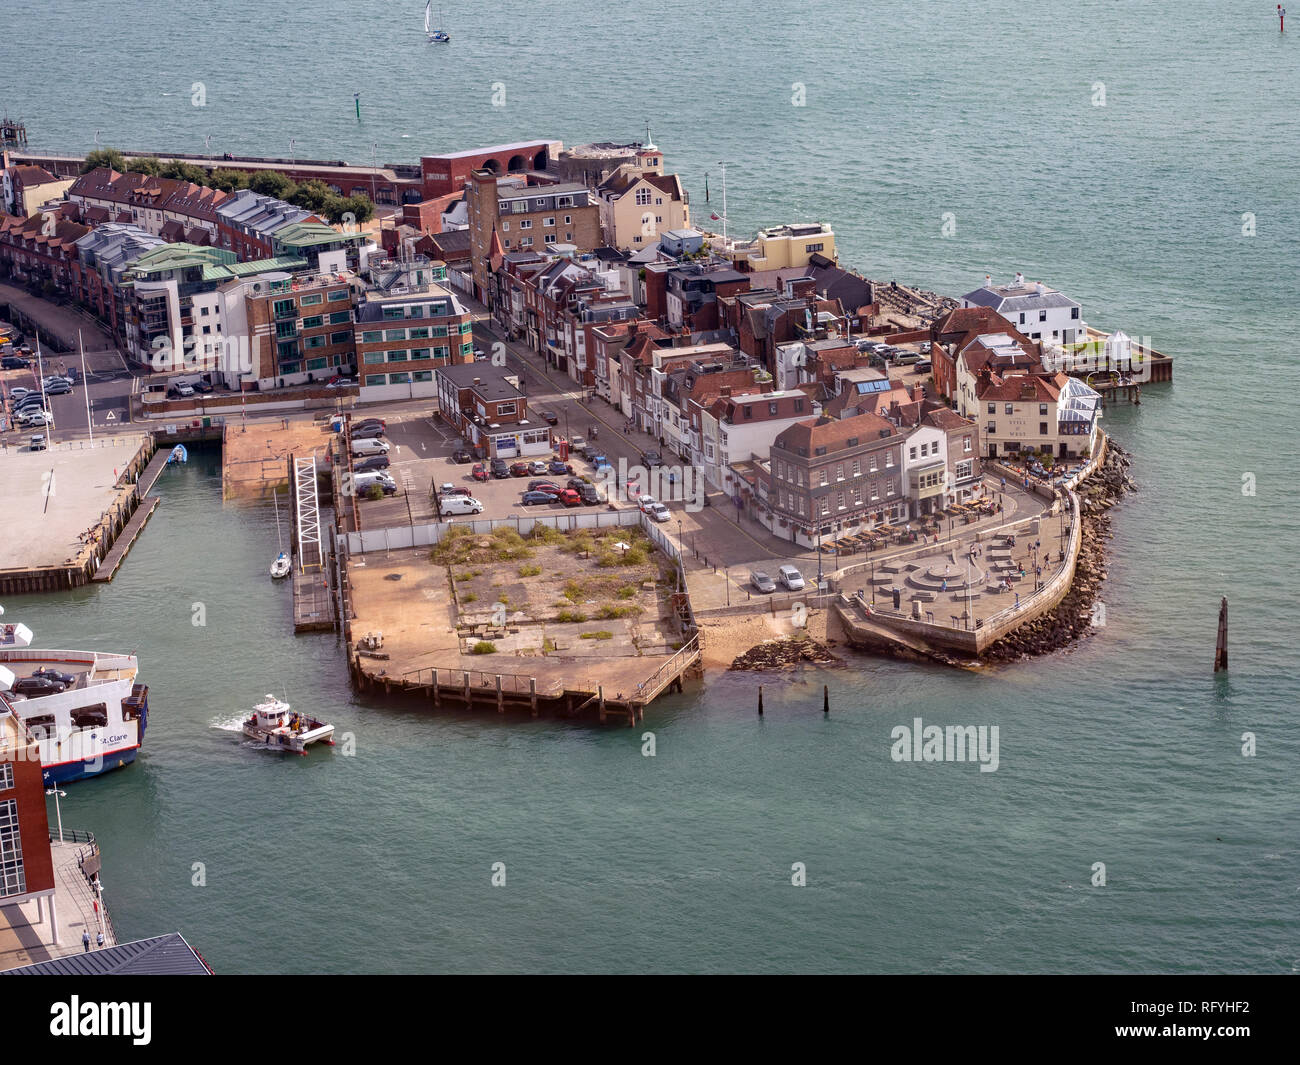 Cities of the world - Alphabetic  - Page 46 Aerial-view-of-spice-island-old-portsmouth-portsmouth-hampshire-england-uk-RFYHF2